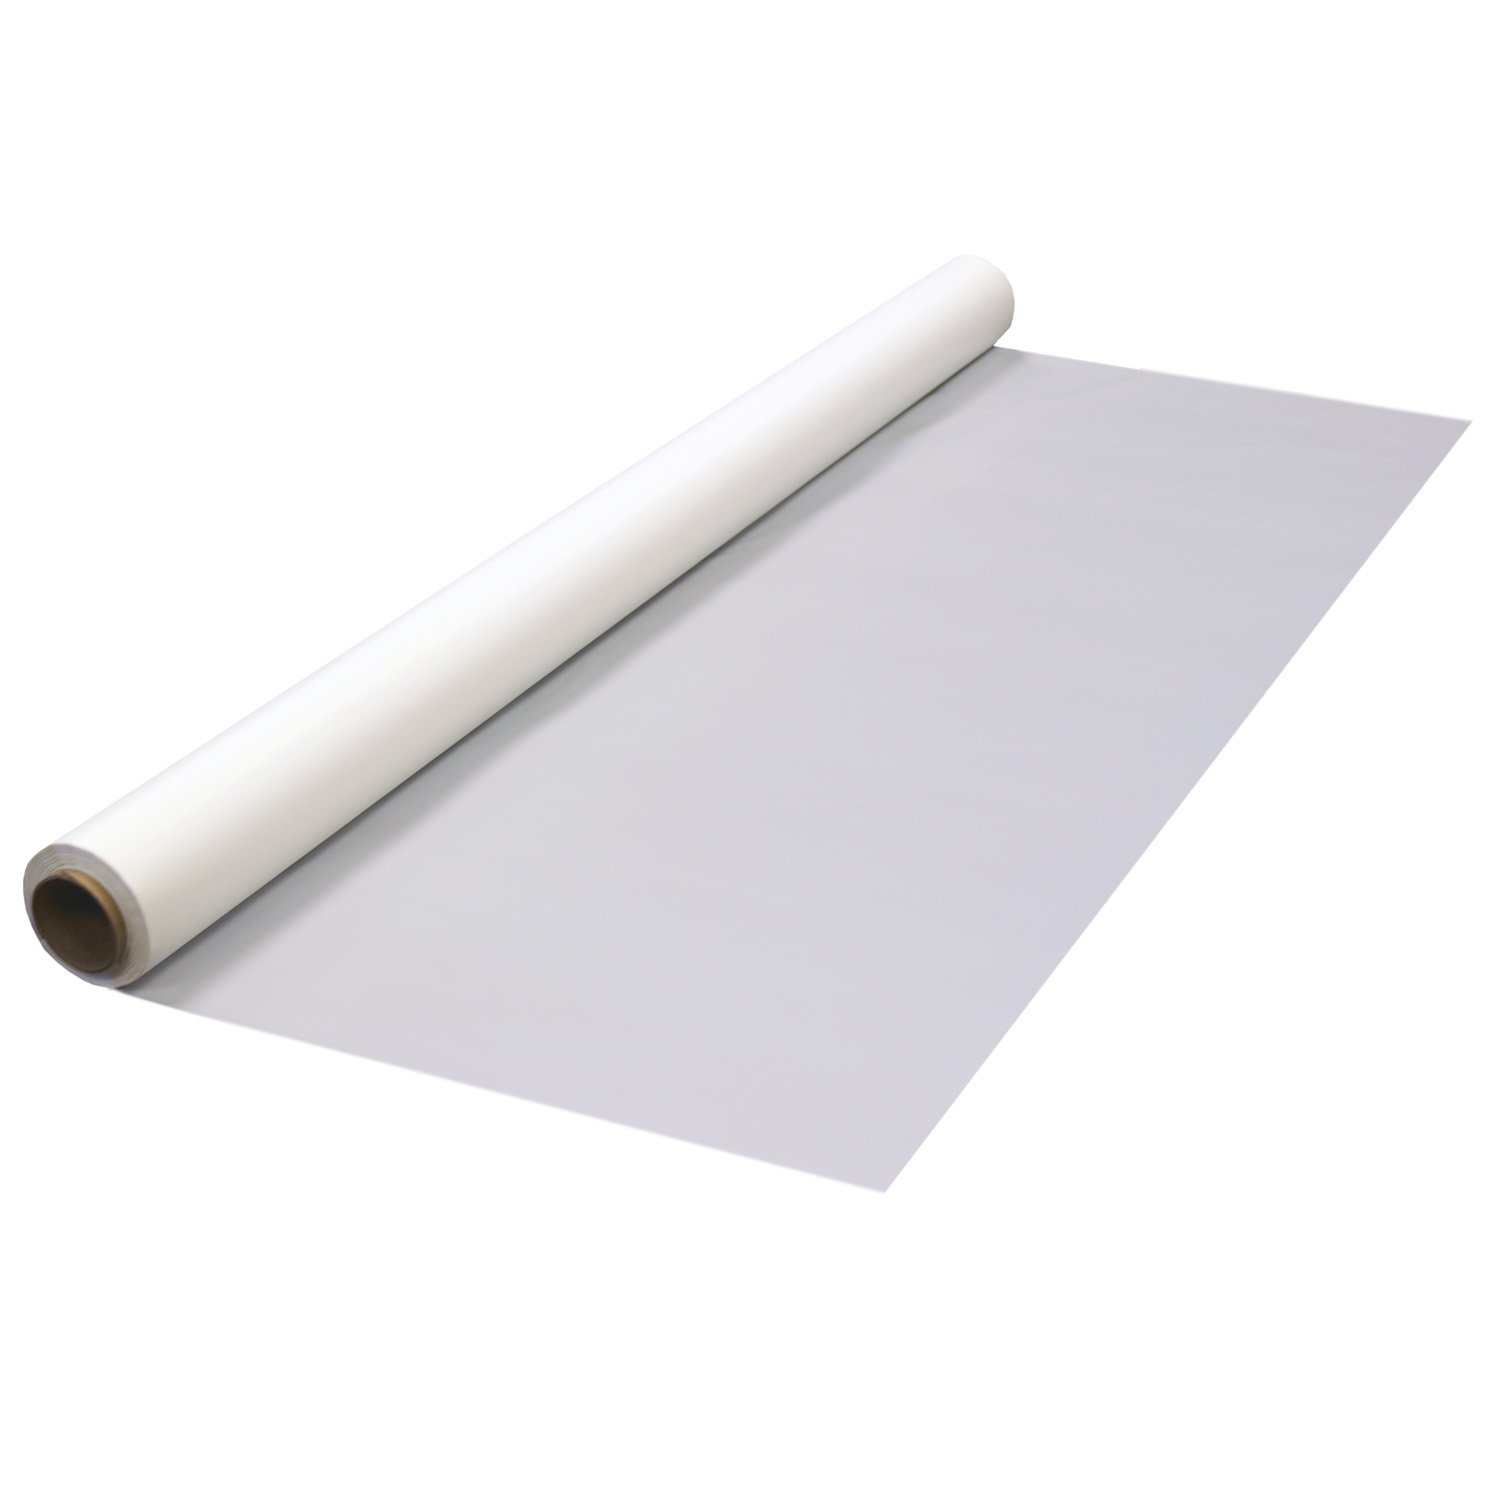 Party Essentials Plastic Banquet Table Roll Available in 27 Colors, 40'' x 100', White